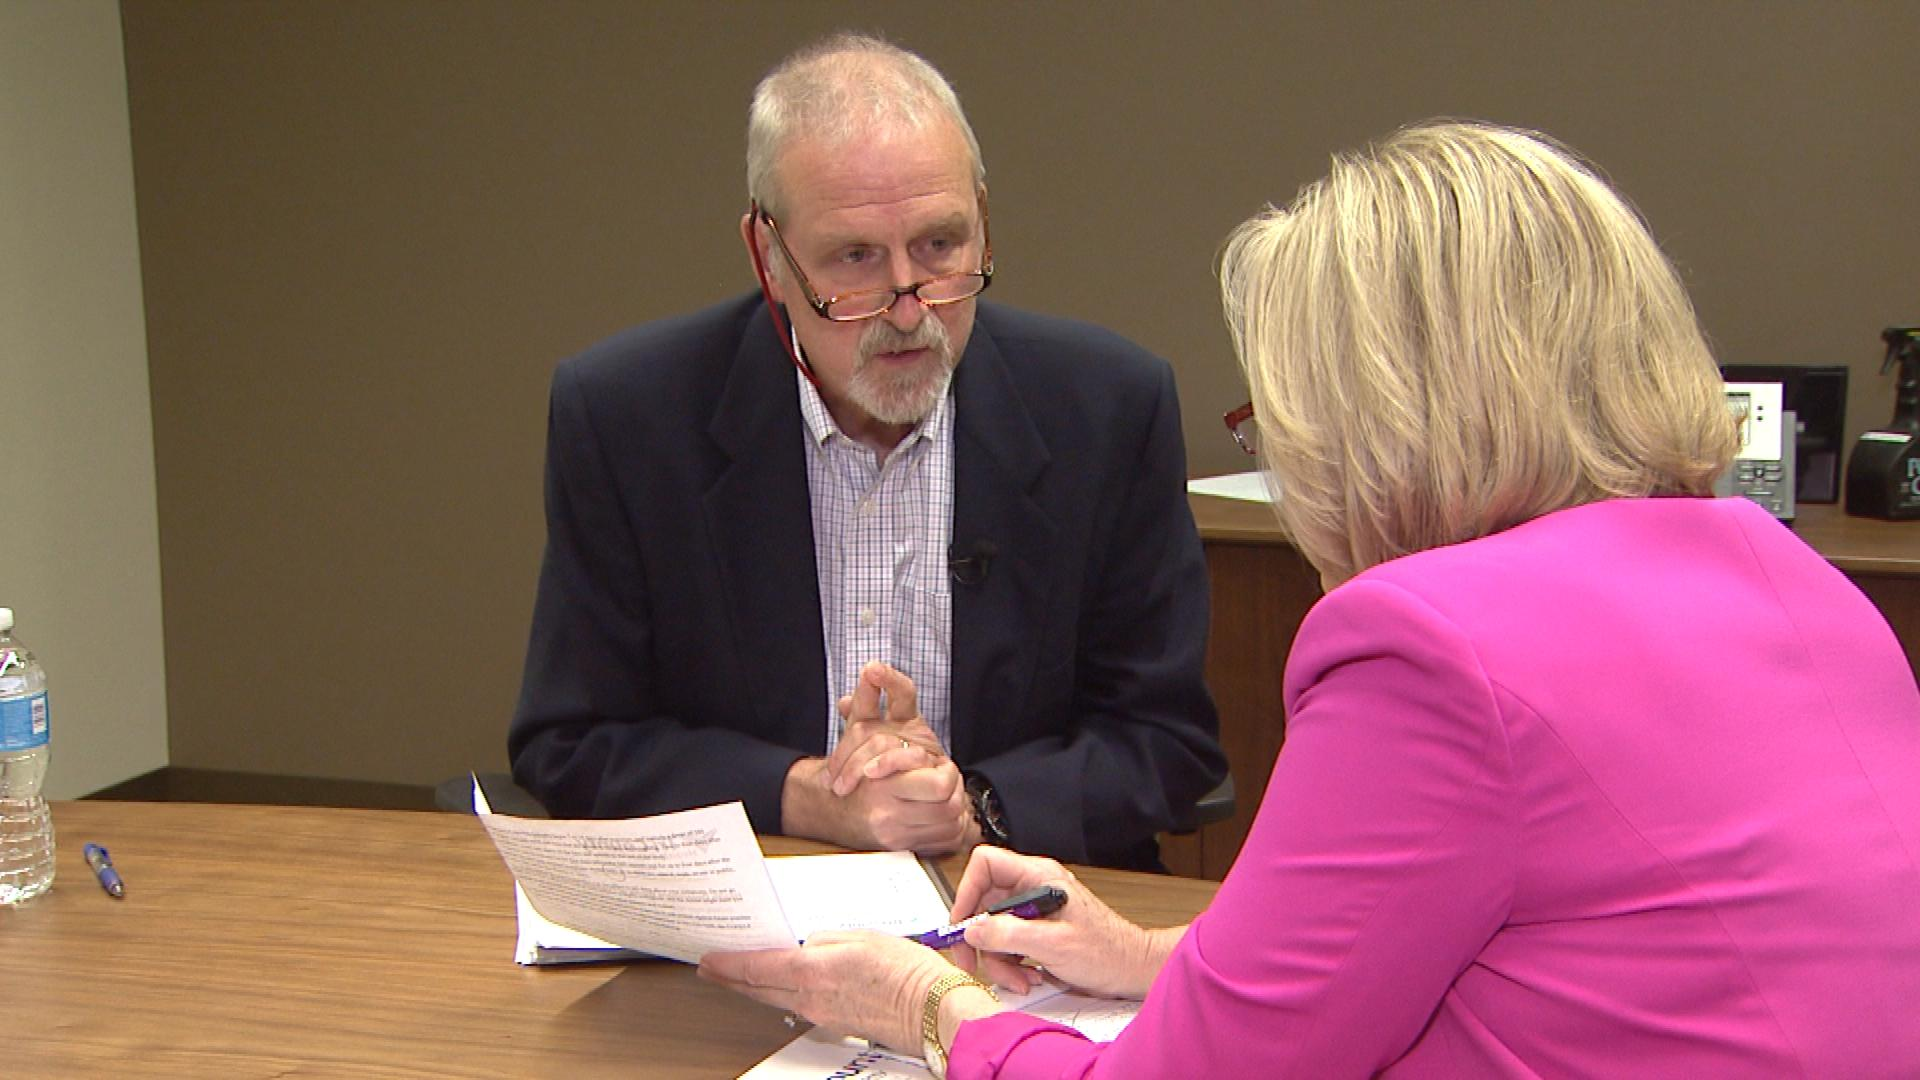 Tri-County Health Department Executive Director Dr. John Douglas is interviewed by CBS4's Kathy Walsh (credit: CBS)